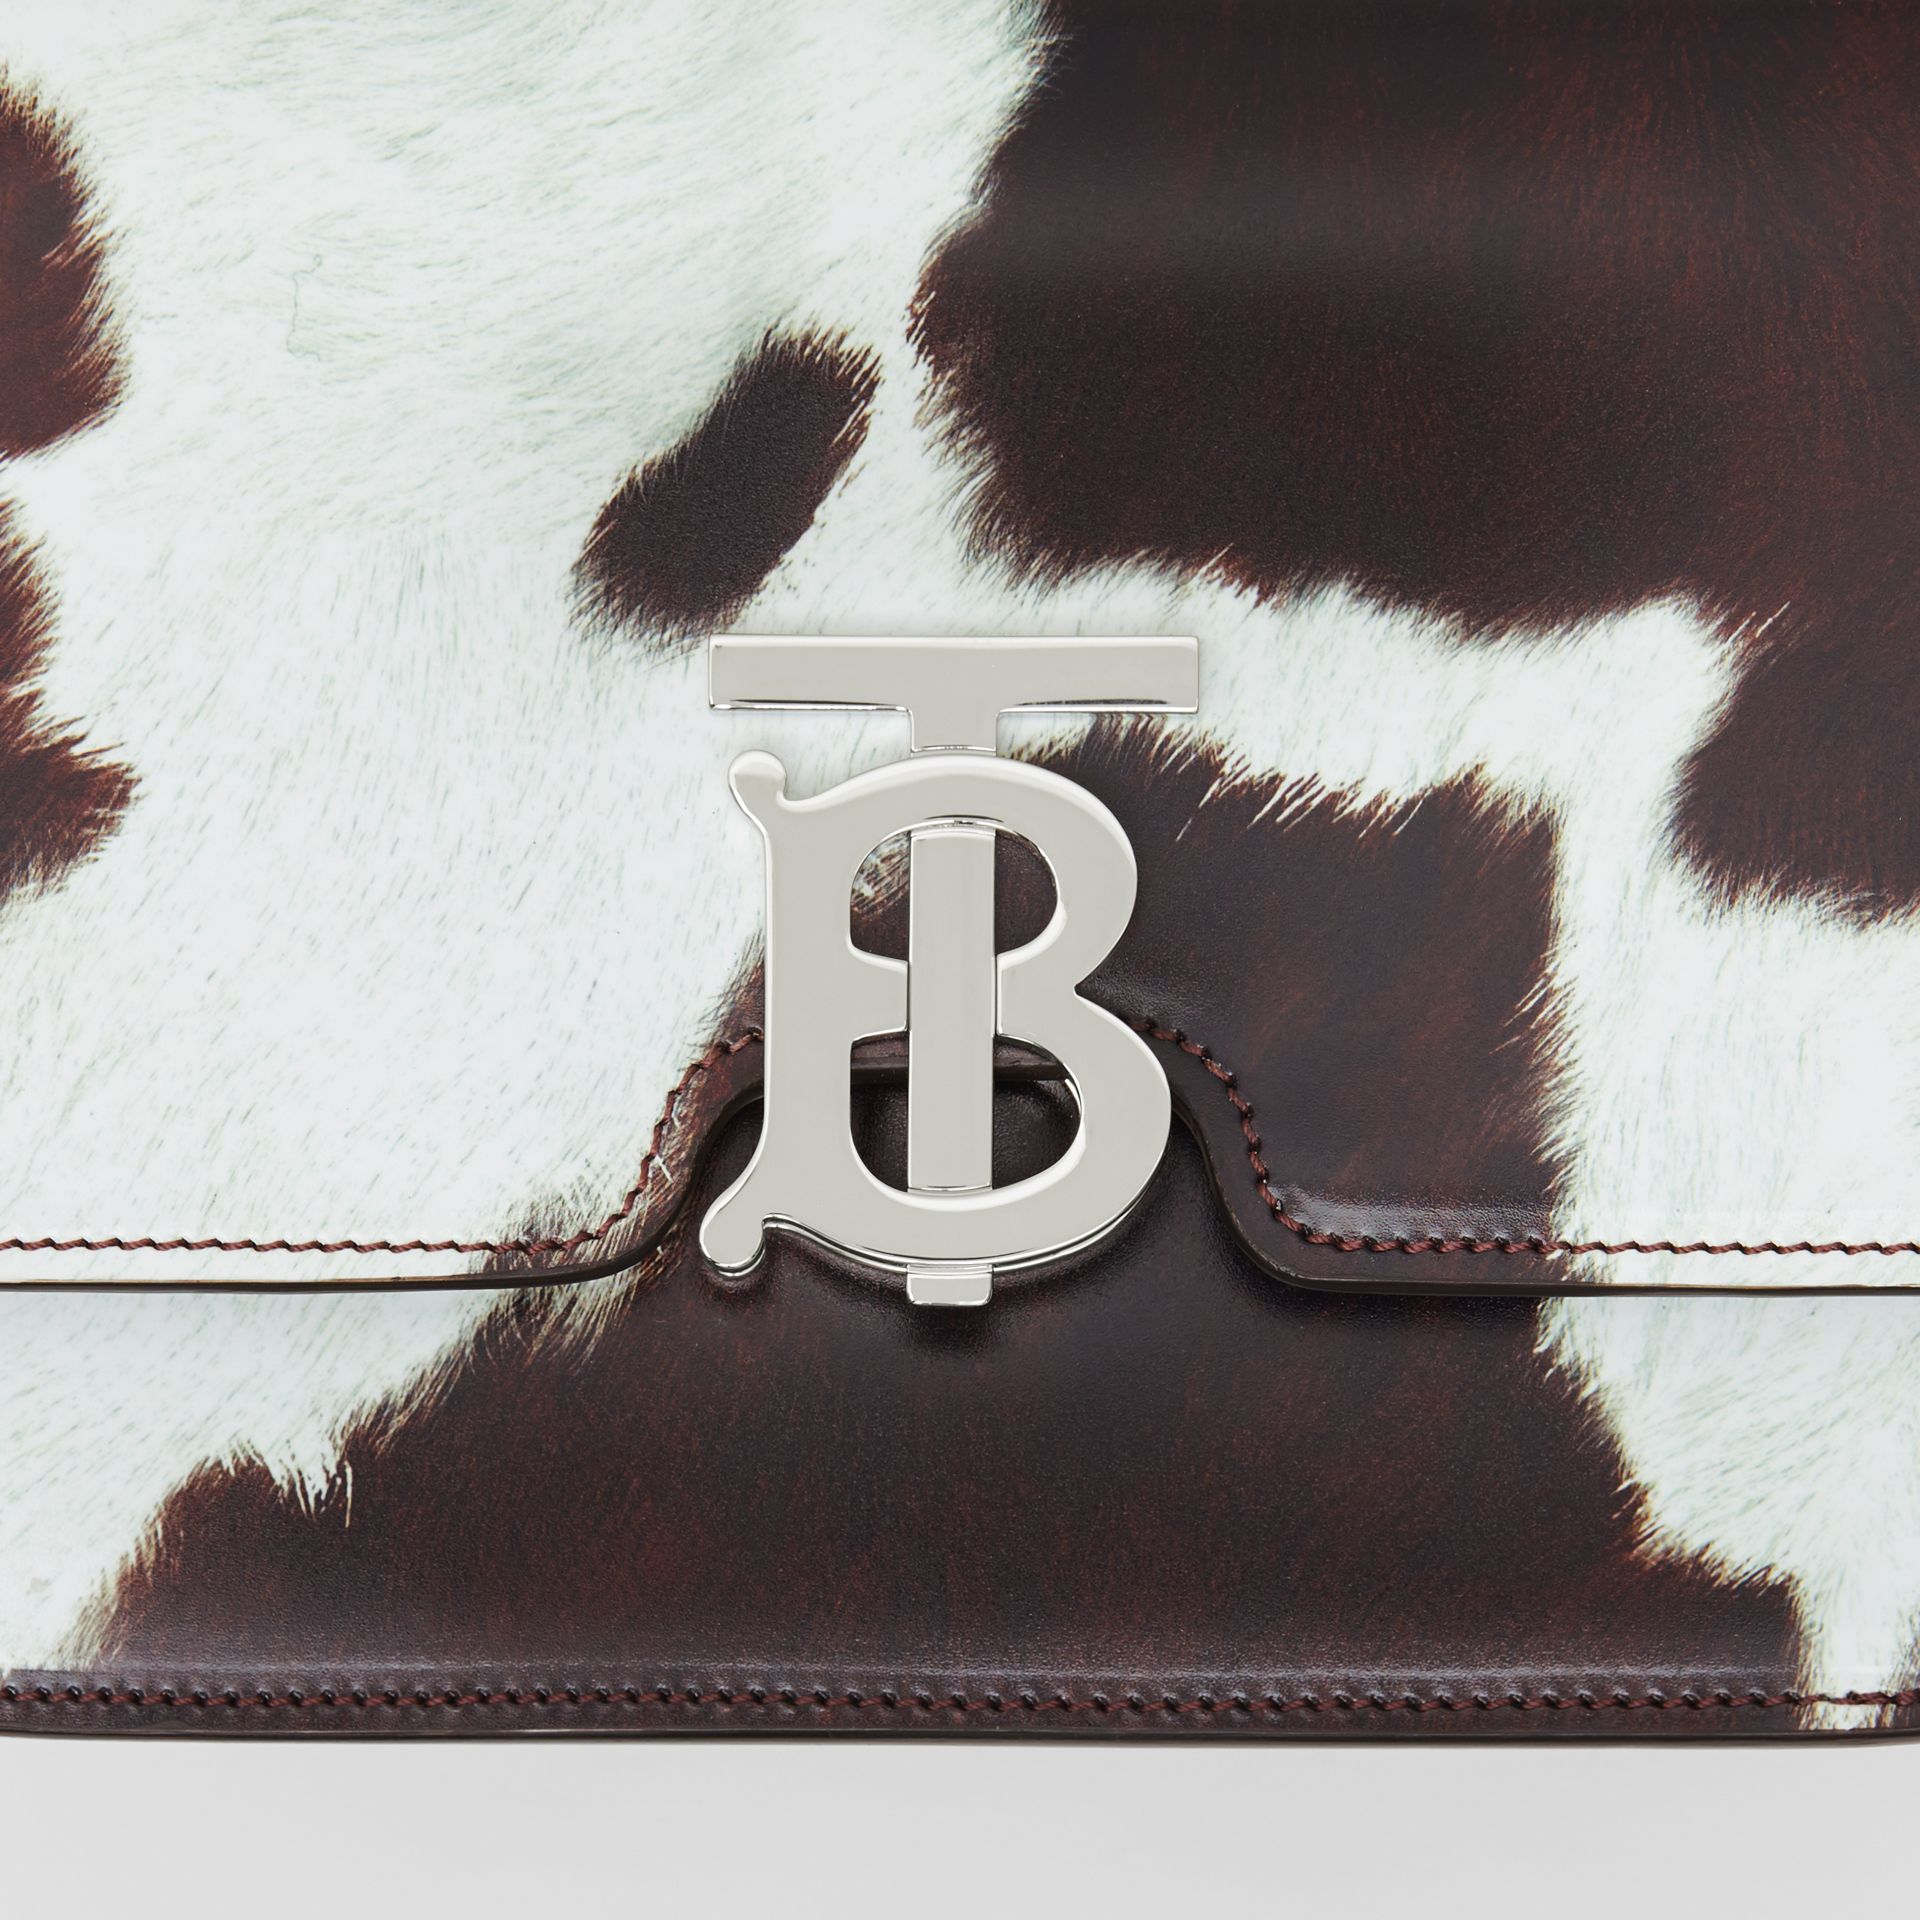 Small Cow Print Leather TB Bag in Mahogany Red - Women | Burberry - gallery image 1